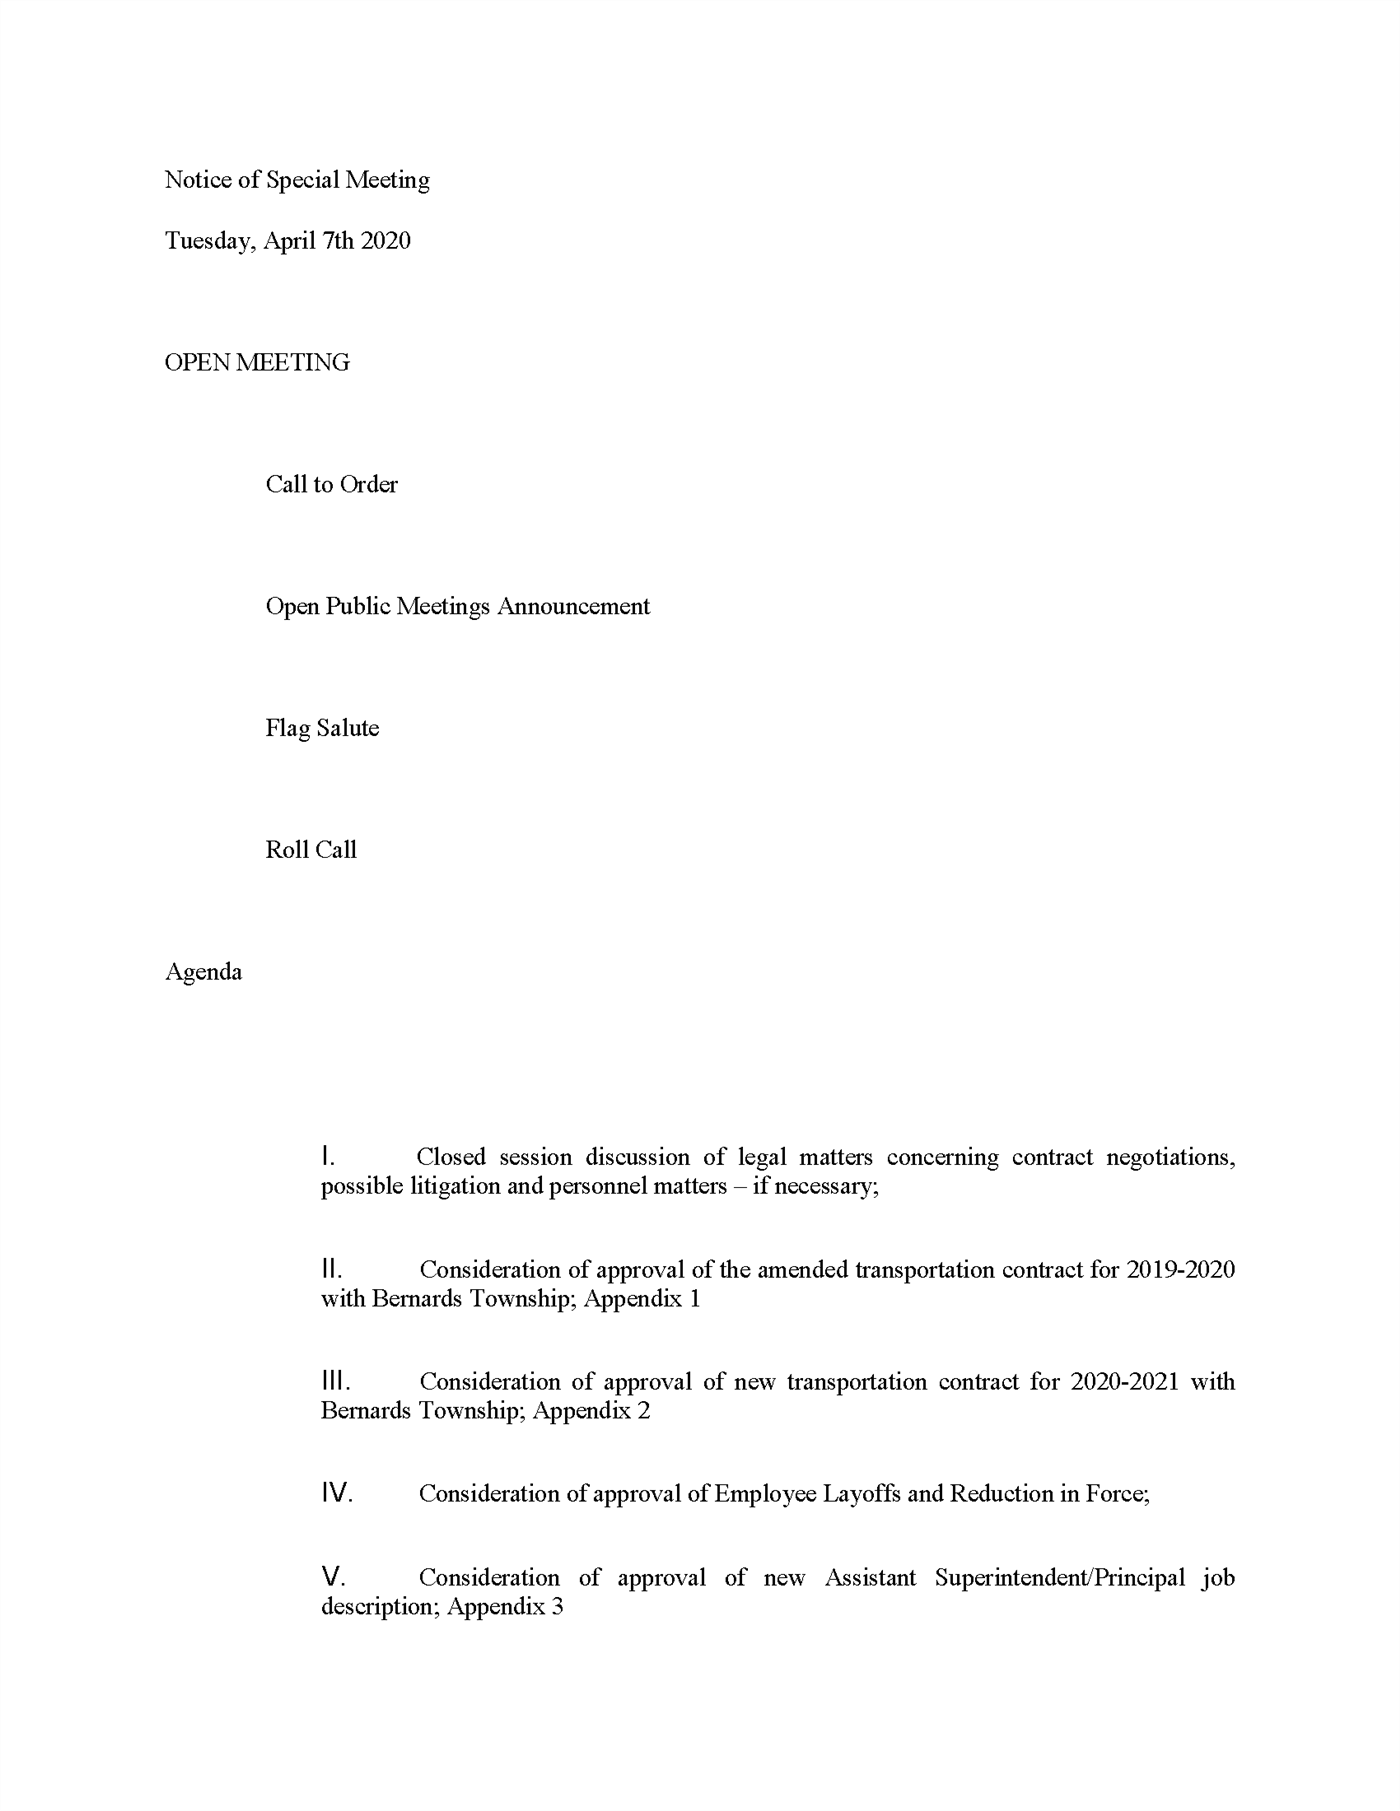 Notice of Special Meeting Tuesday, April 7th 2020